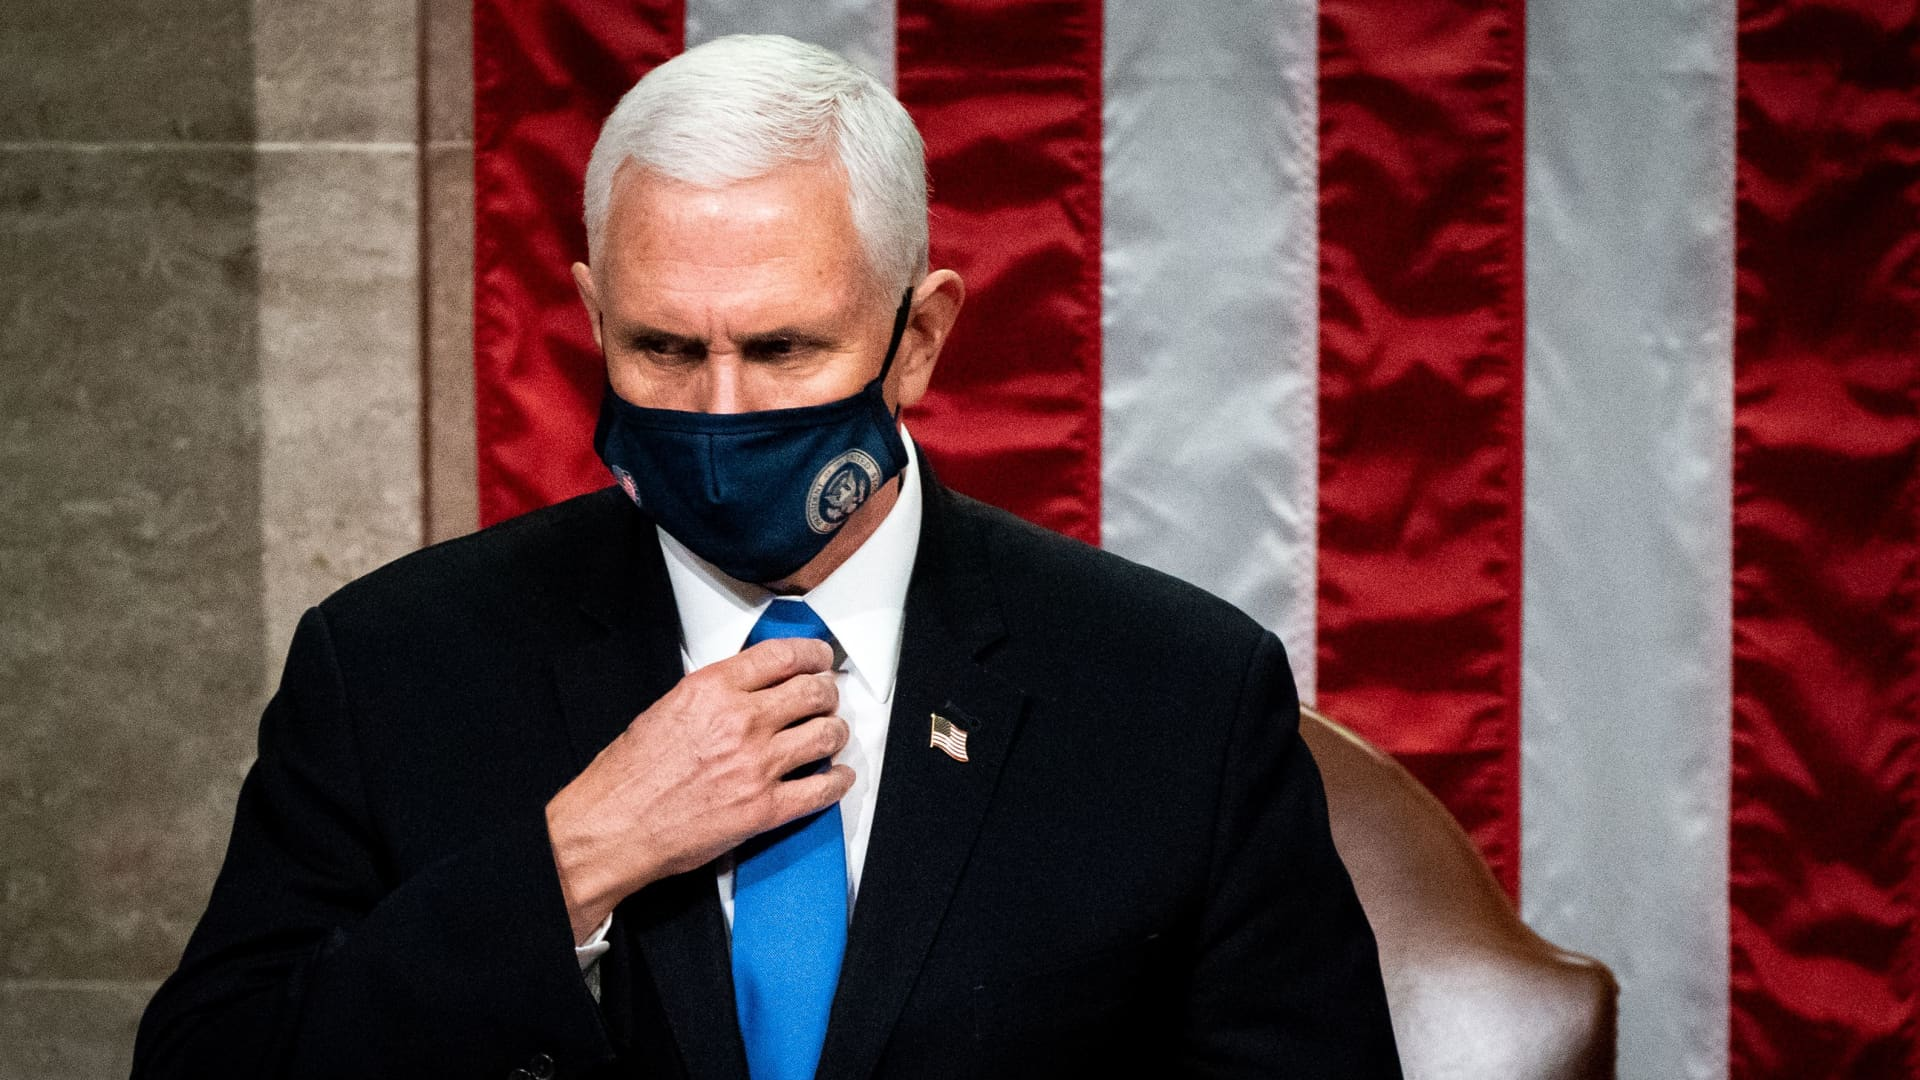 Vice President Mike Pence presides over a Joint session of Congress to certify the 2020 Electoral College results after supporters of President Donald Trump stormed the Capitol earlier in the day on Capitol Hill in Washington, DC on January 6, 2020.